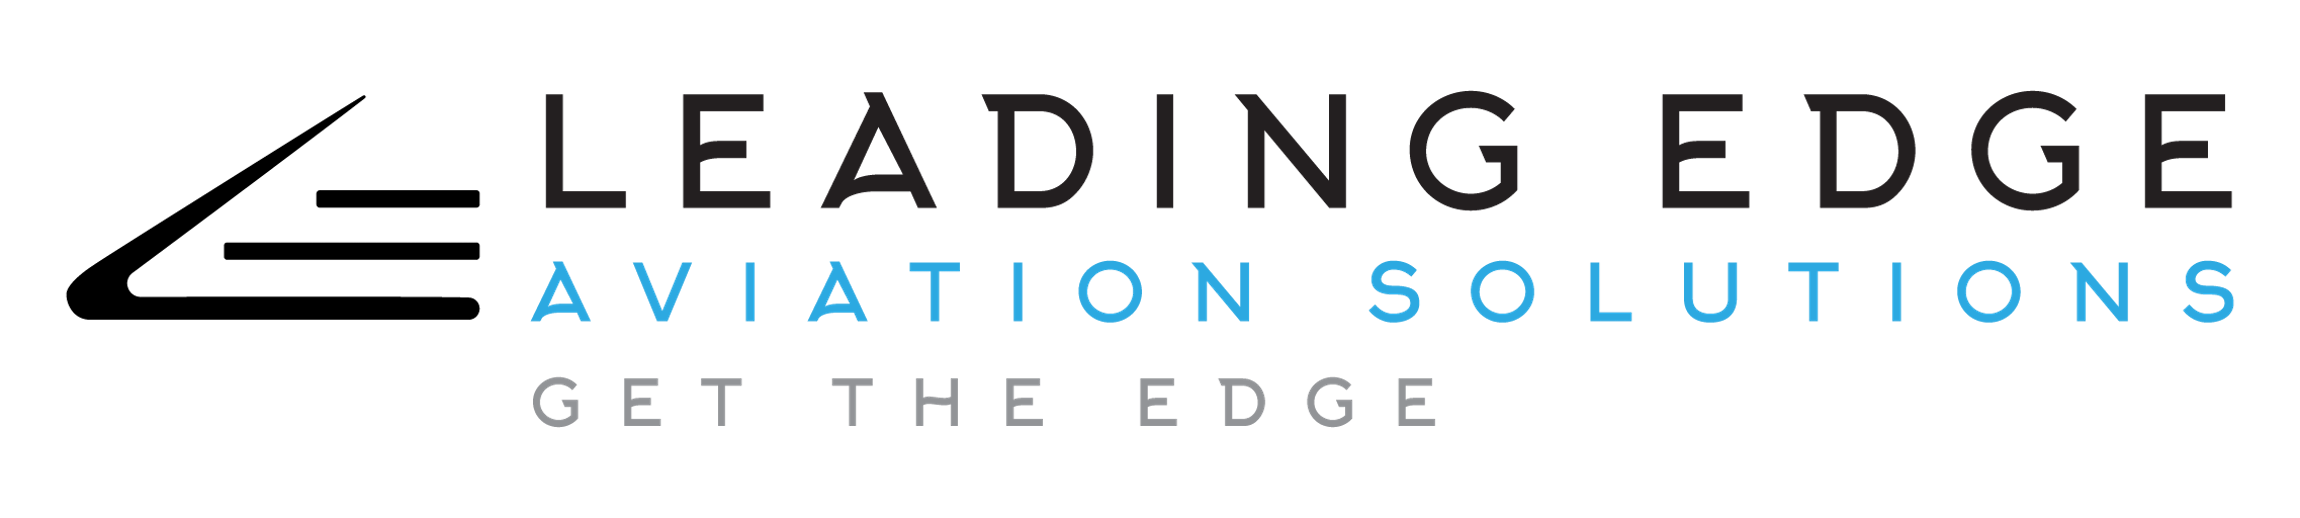 Leading Edge Aviation Solutions, LLC logo